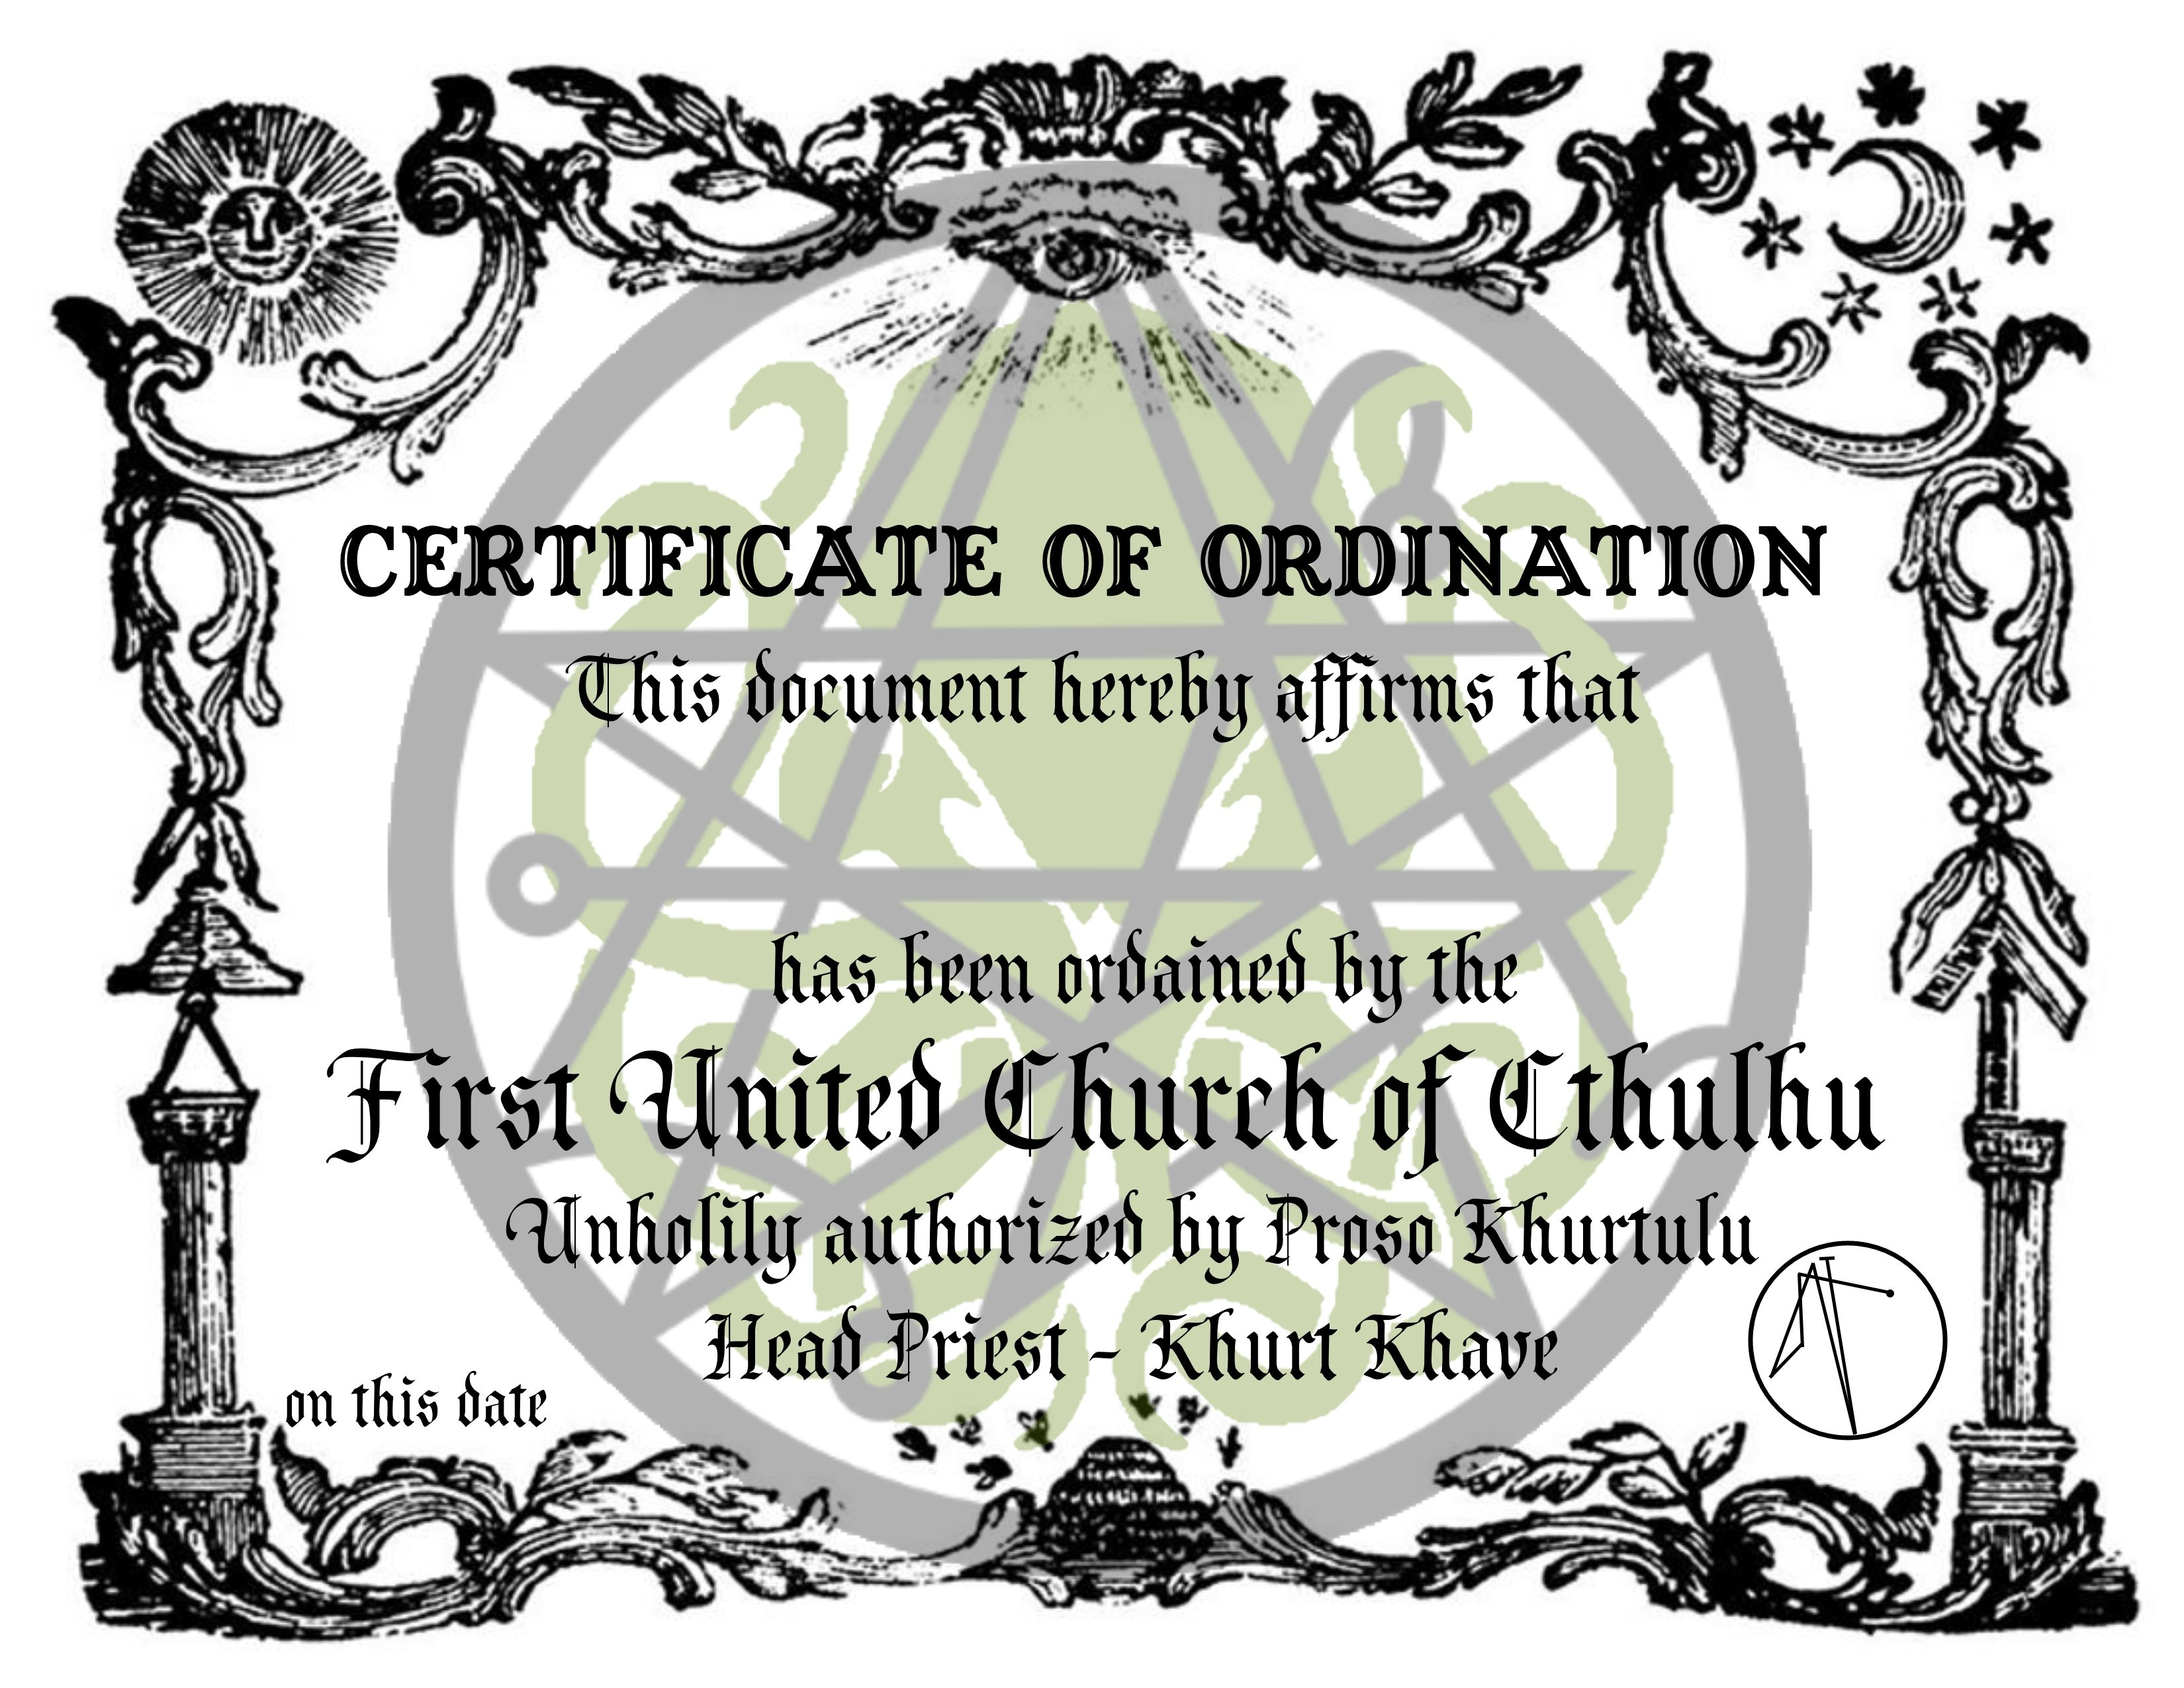 Certificate of Ordination for priests of the First United